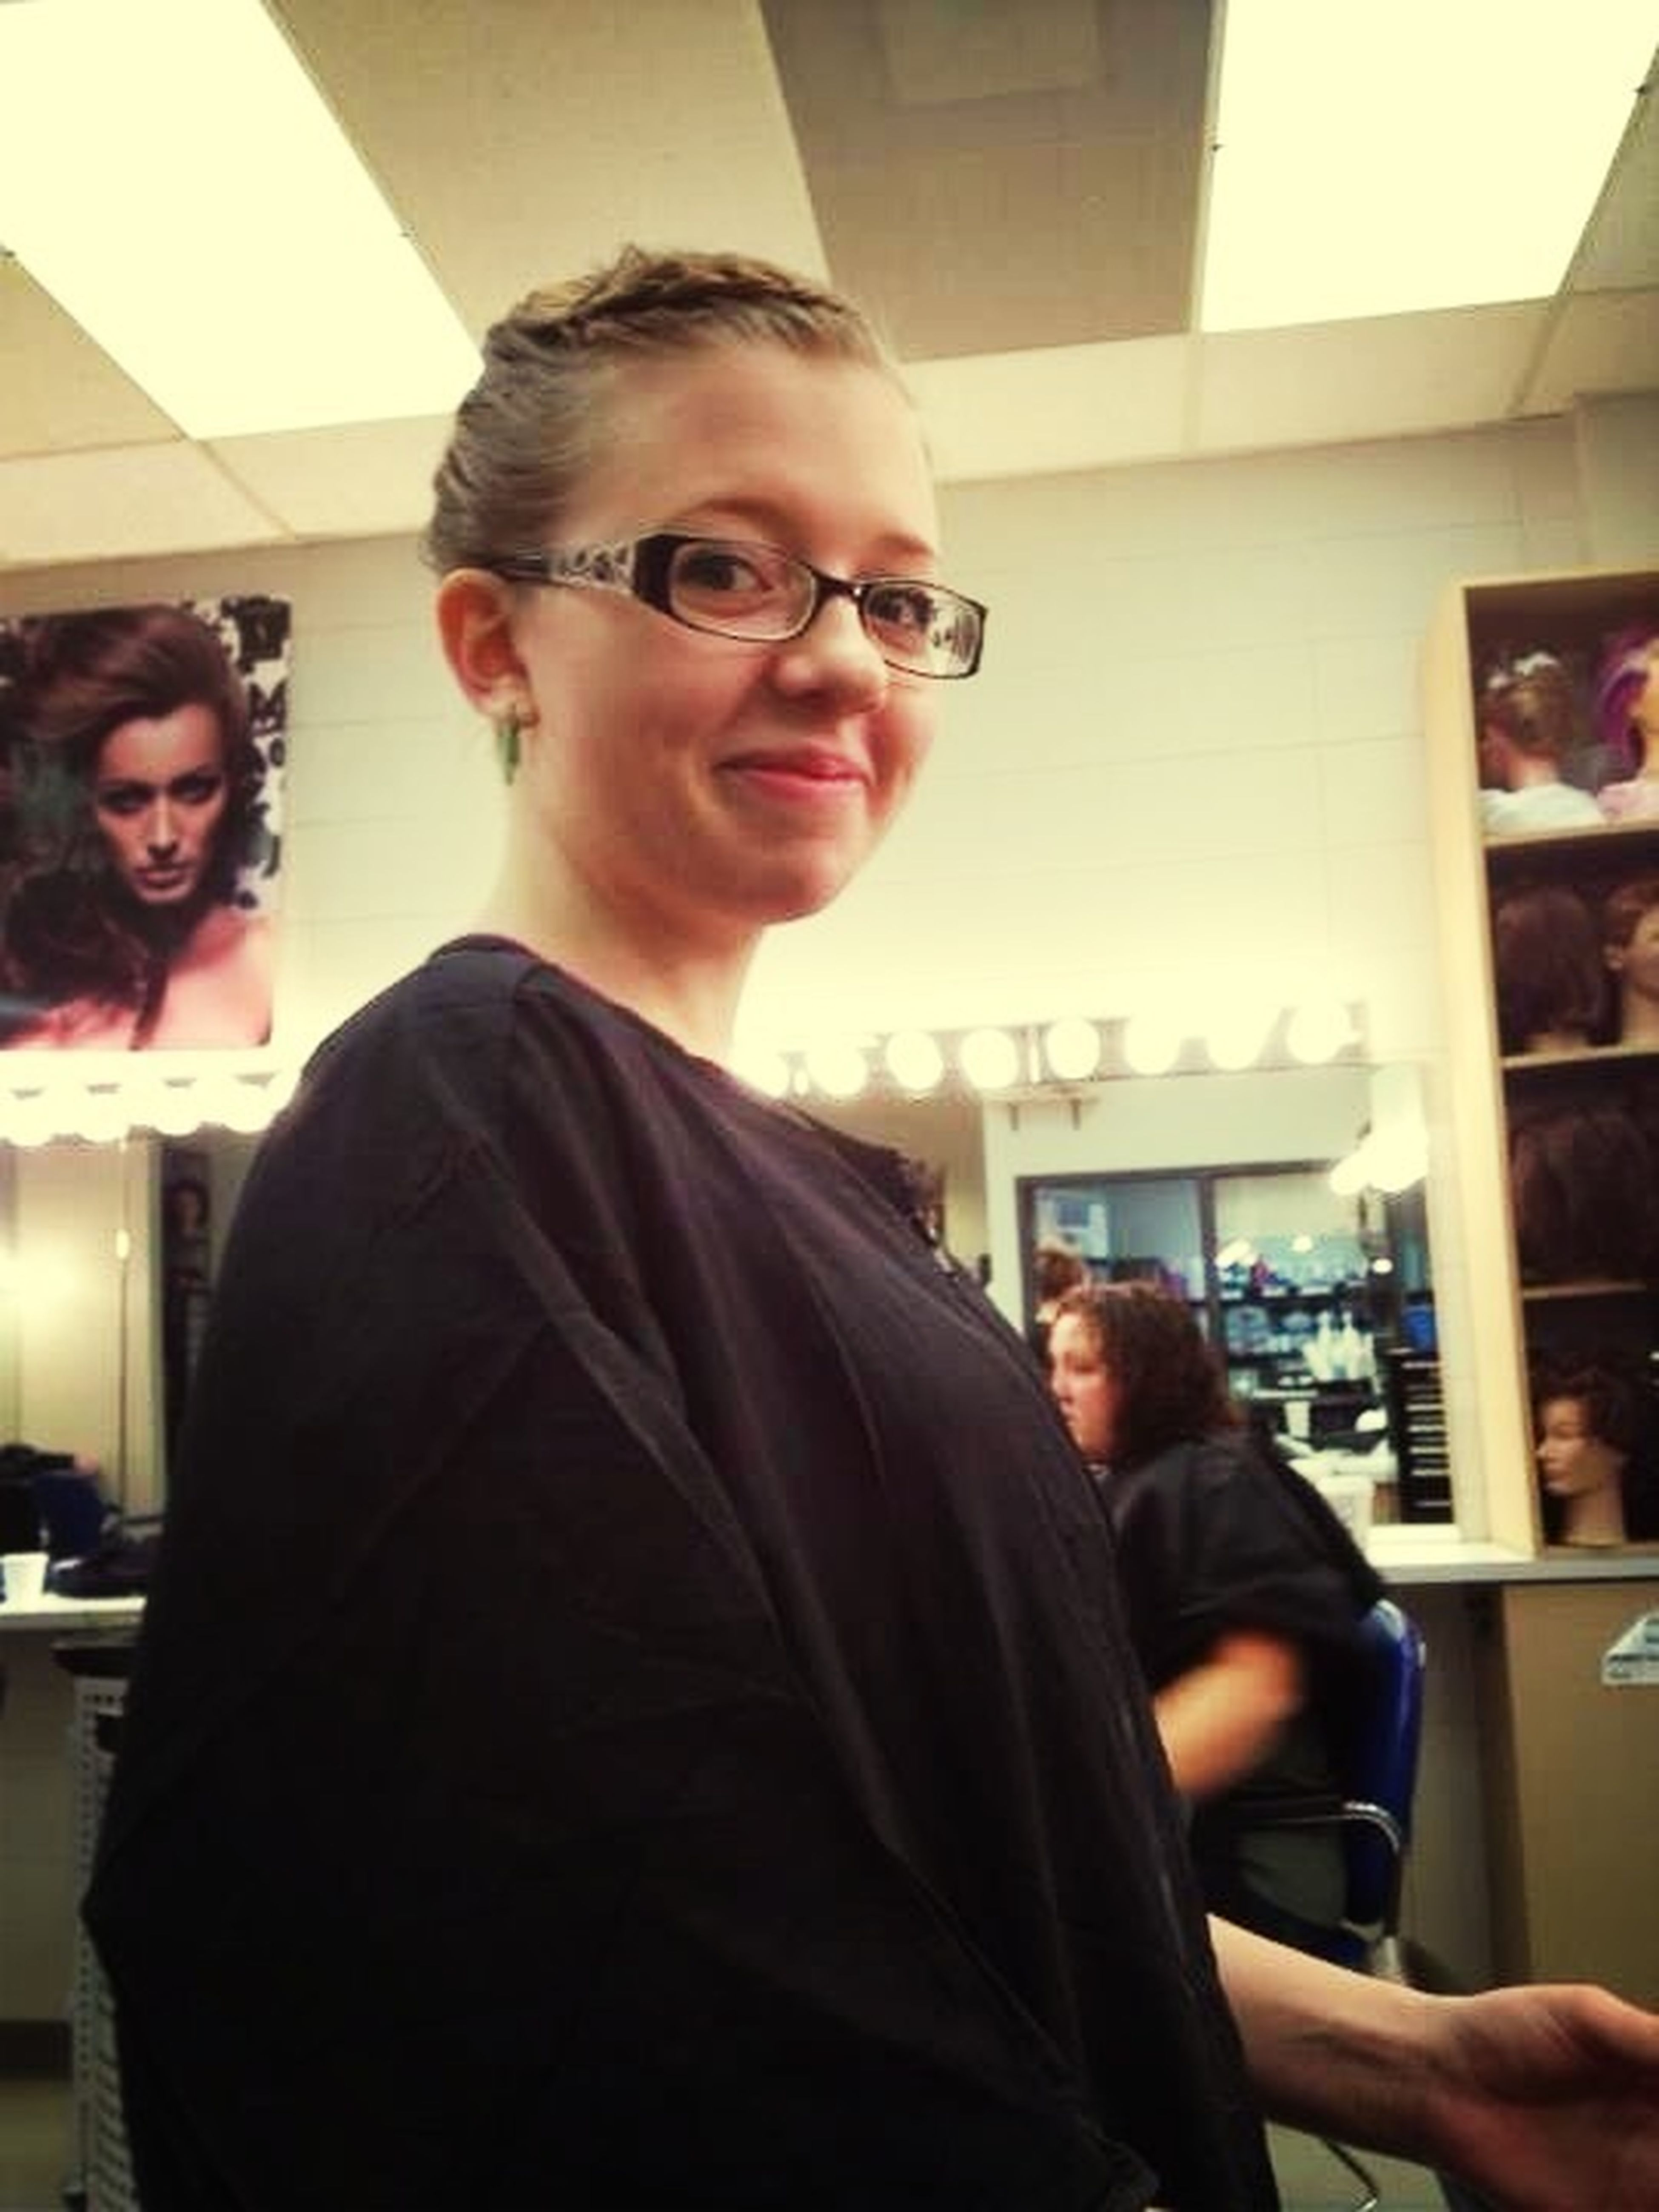 Lol I Look Gross, But Me Doing A Perm Today!